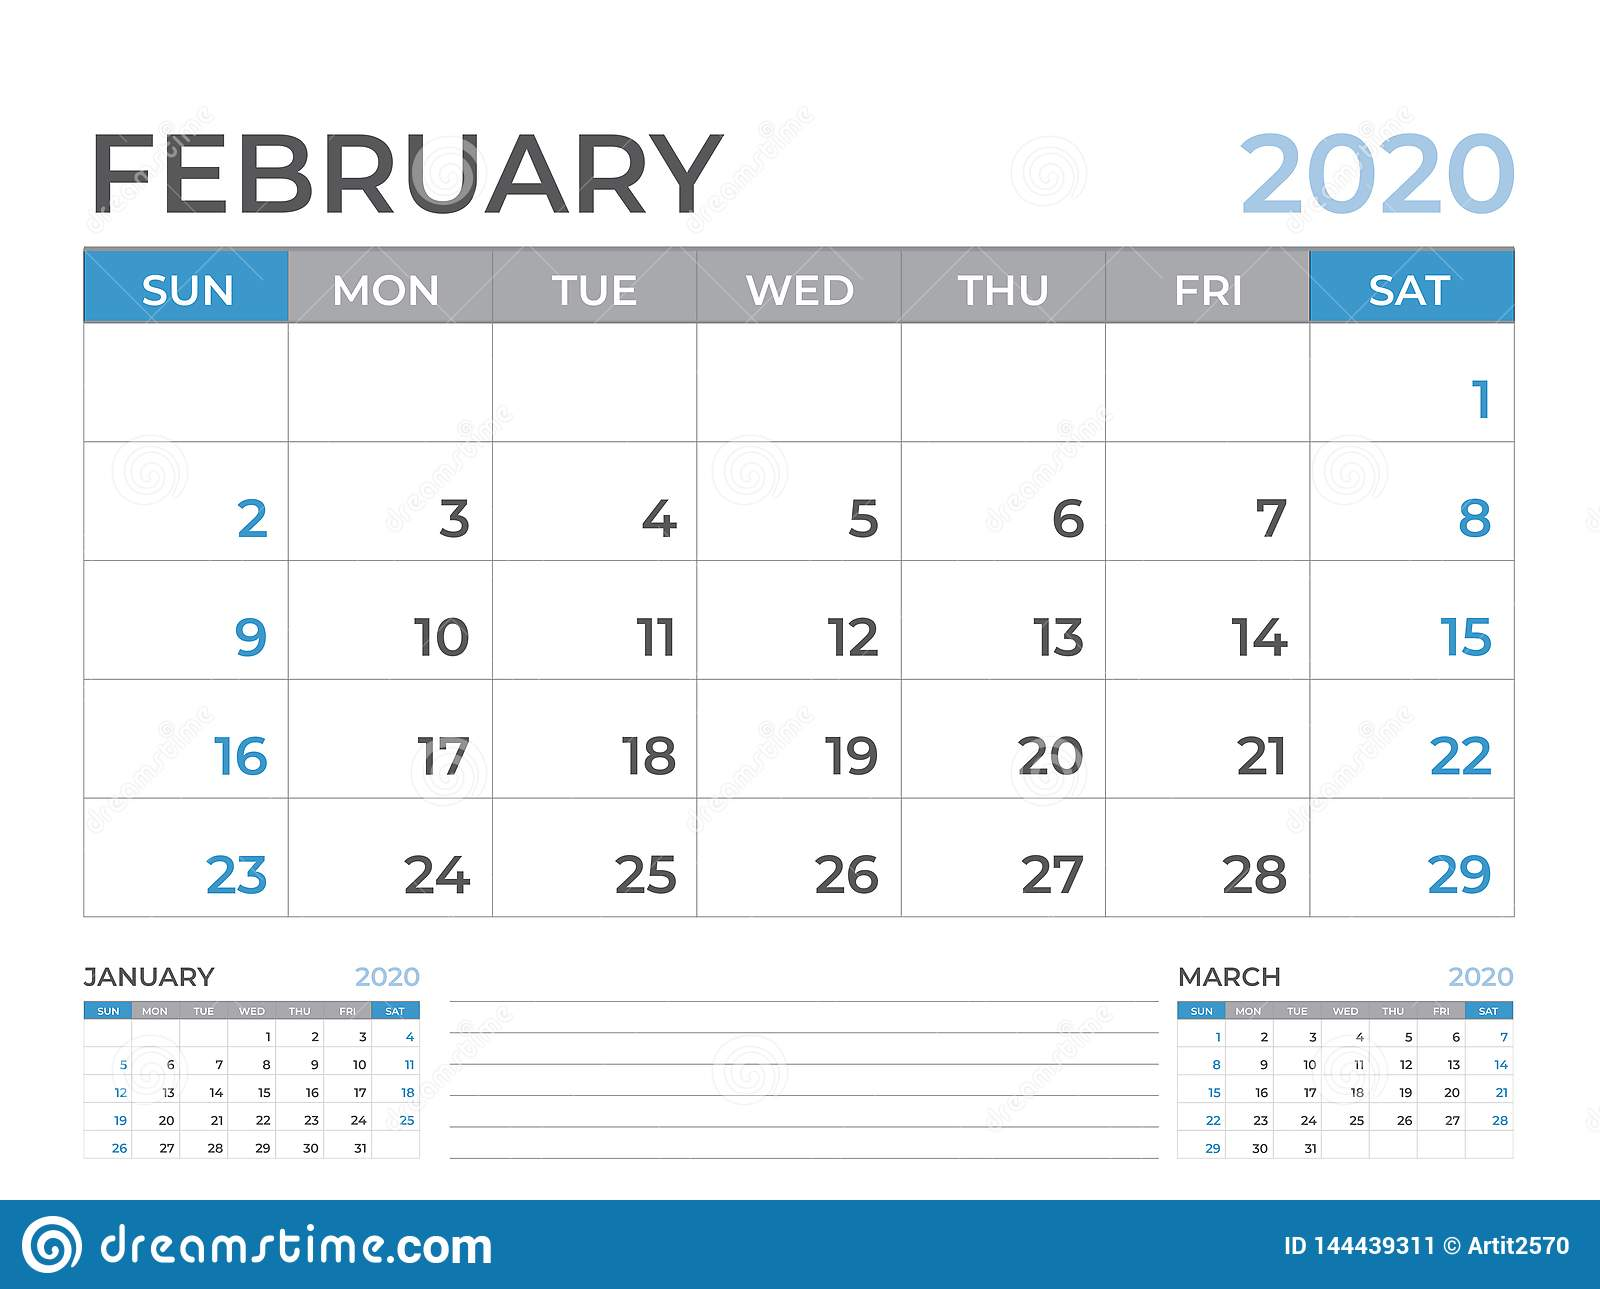 February 2020 Calendar template, Desk calendar layout Size 8 x 6 inch, planner design, week starts on sunday, stationery design